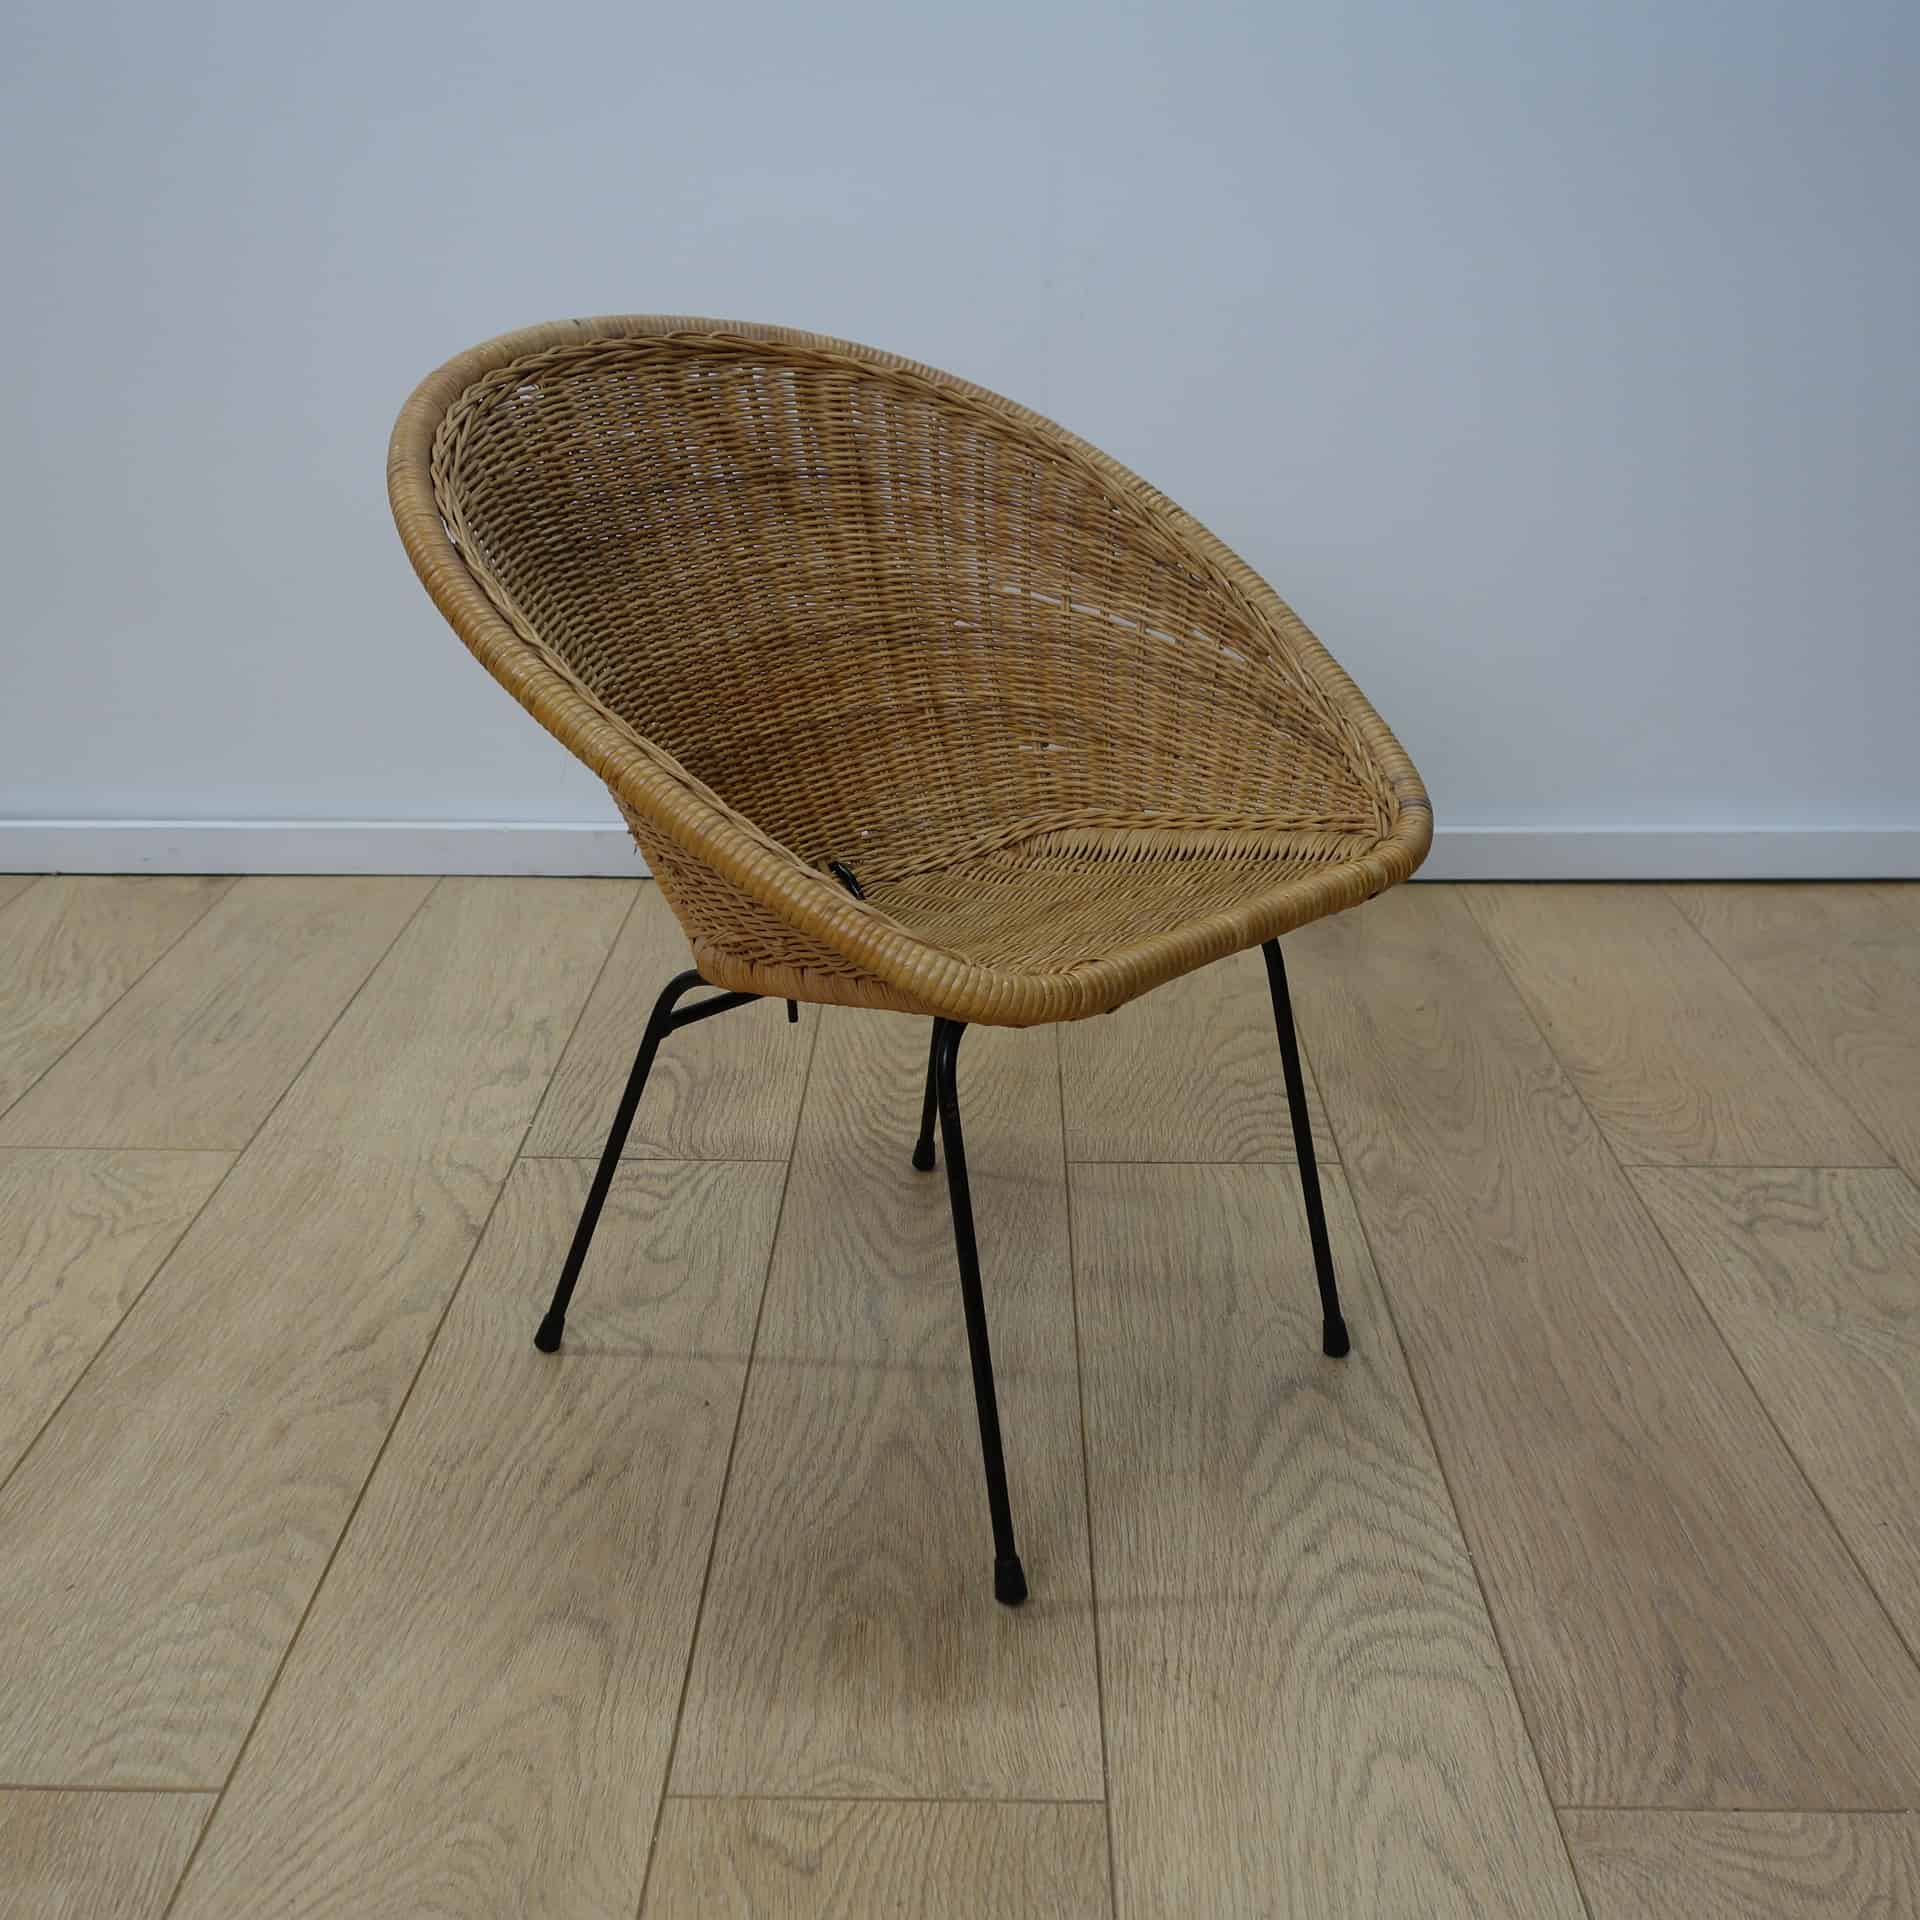 old wicker chairs uk office without arms 1960s childs chair mark parrish mid century modern